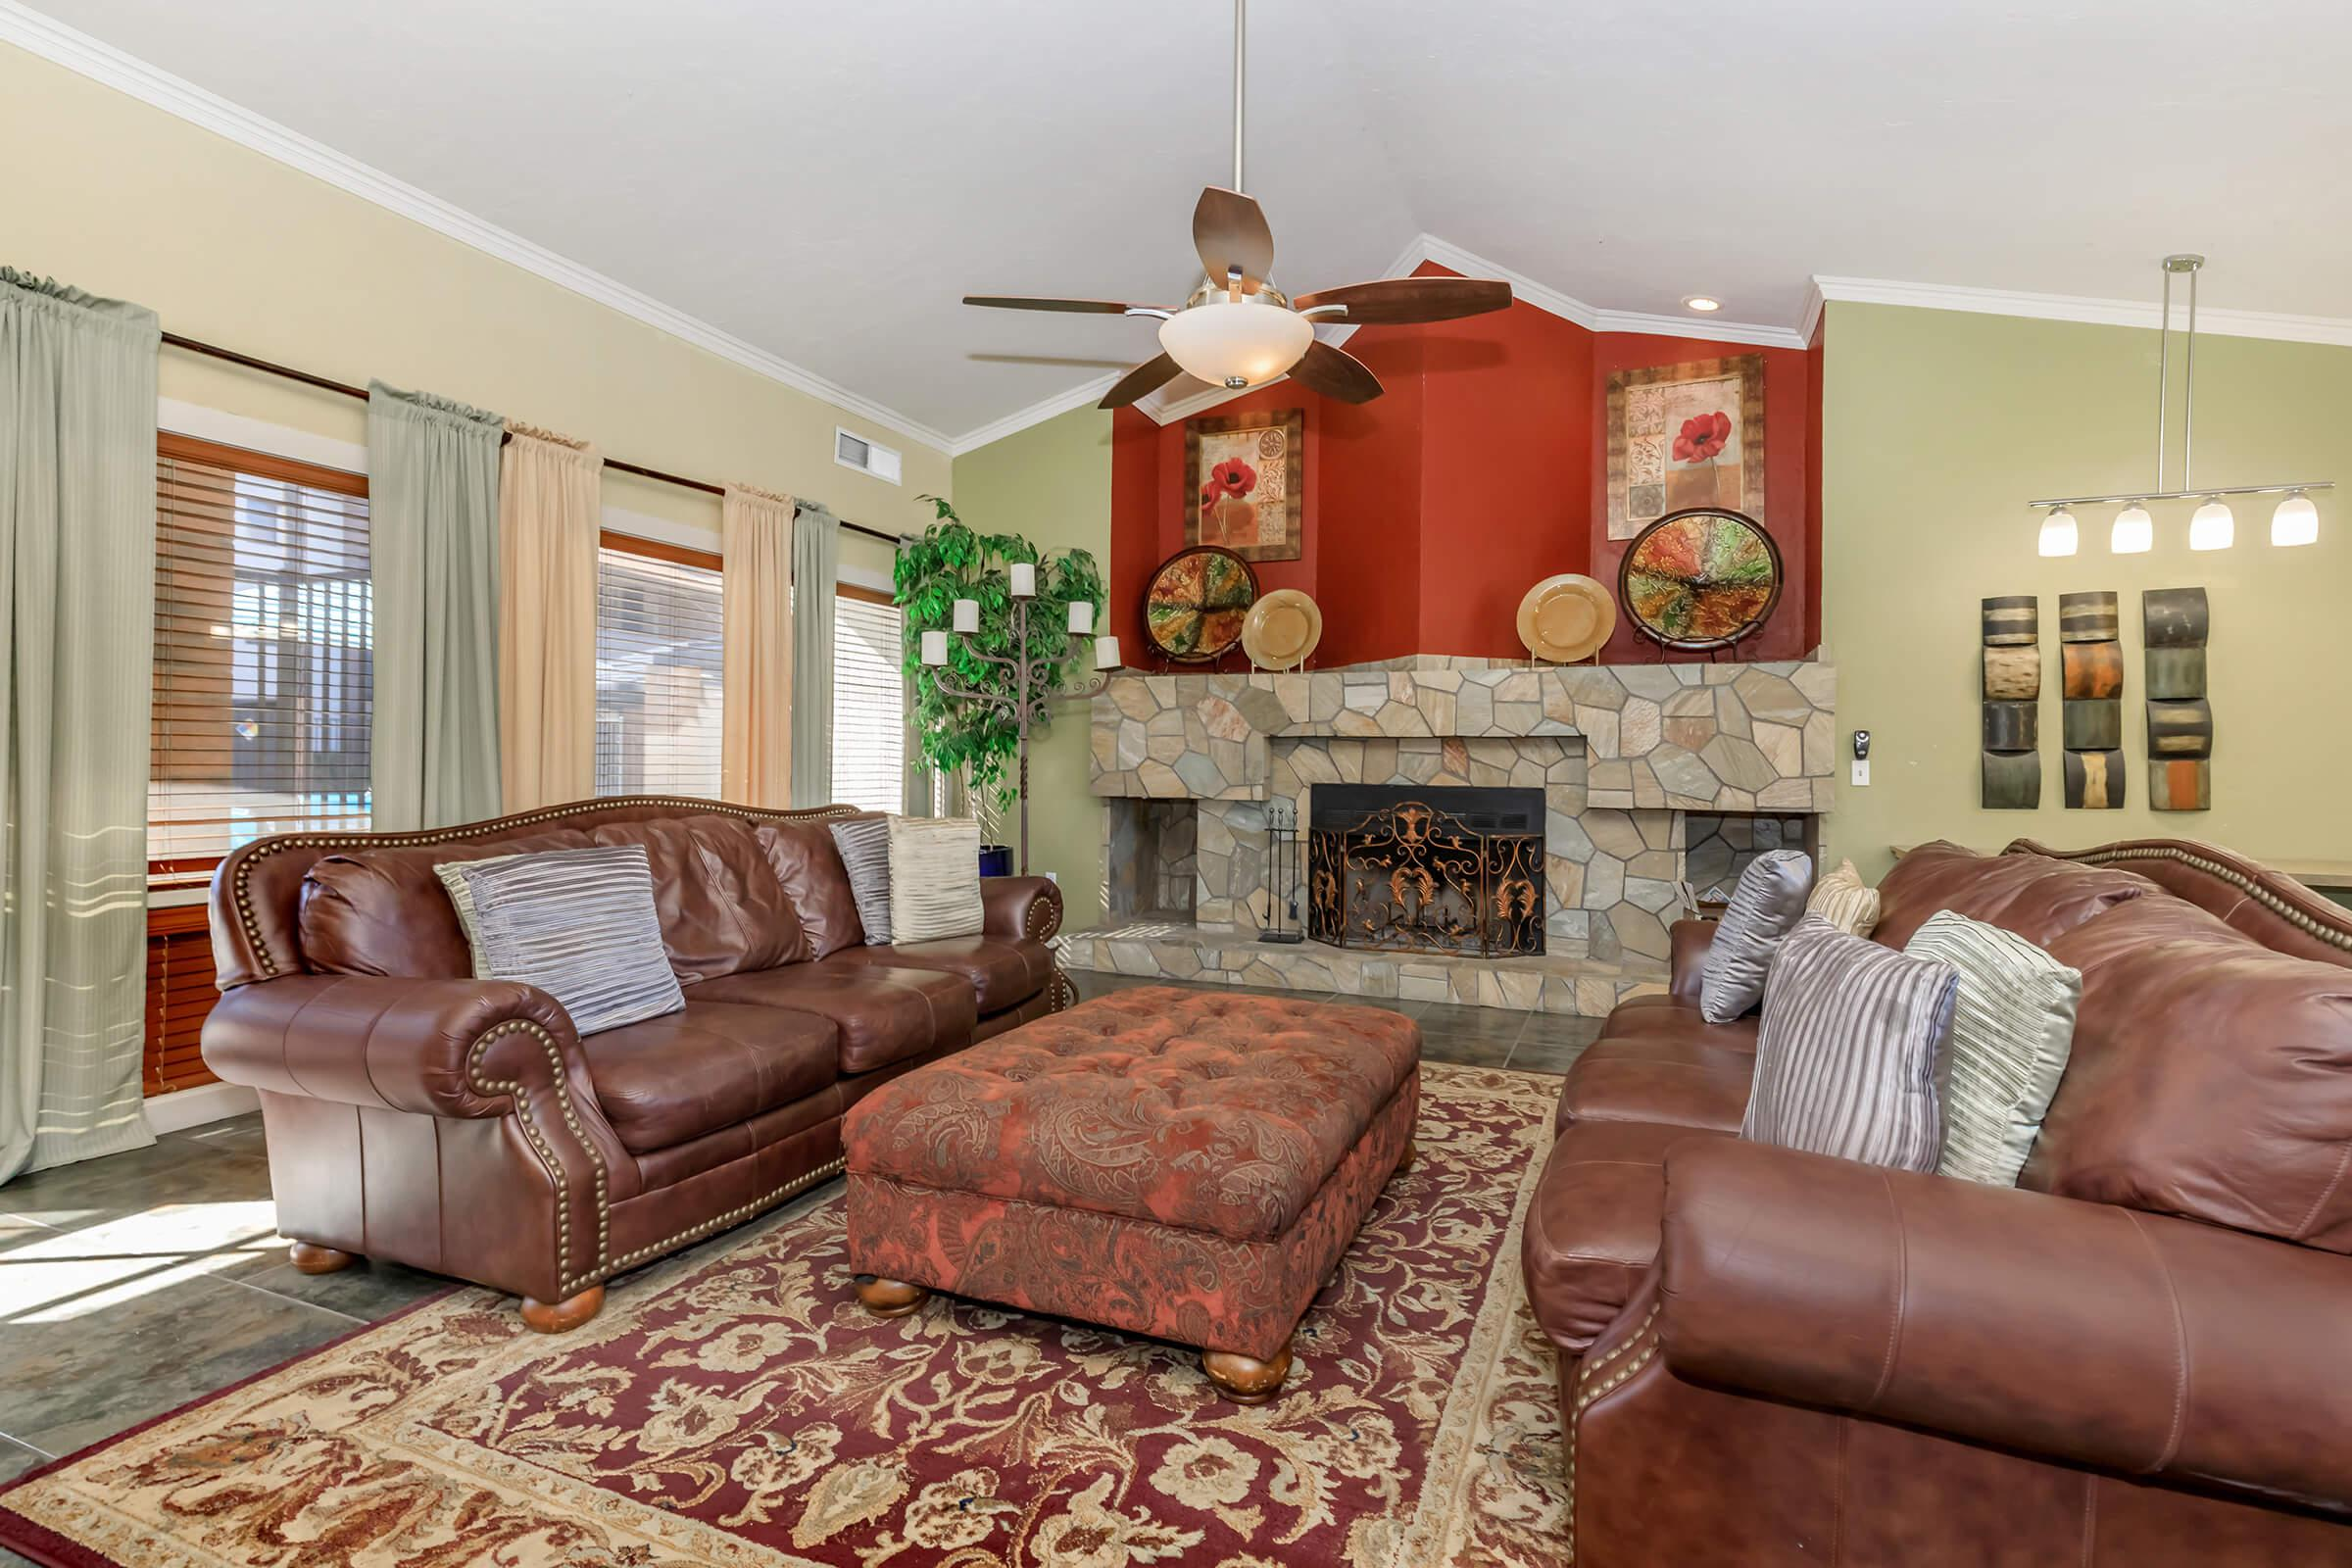 a brown leather couch in a living room filled with furniture and a fireplace